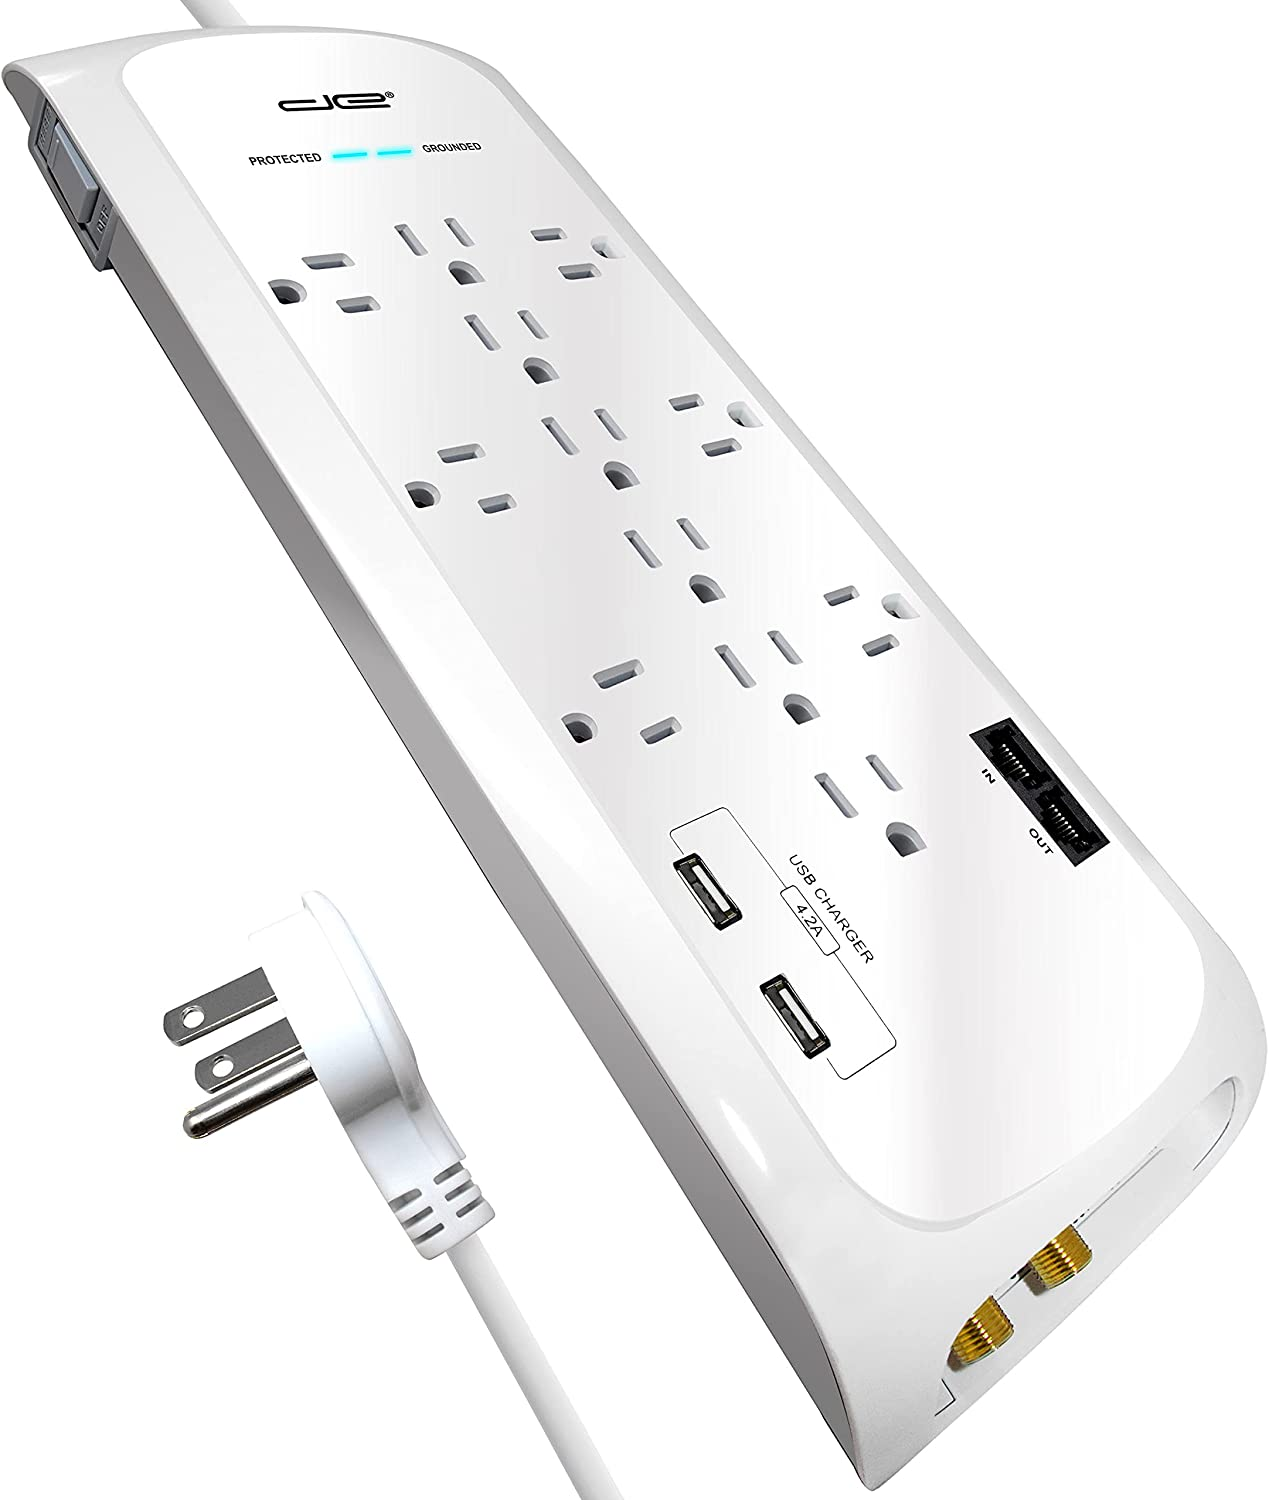 Digital Energy 12 Outlet 4200 Joules Surge Protector Power Strip